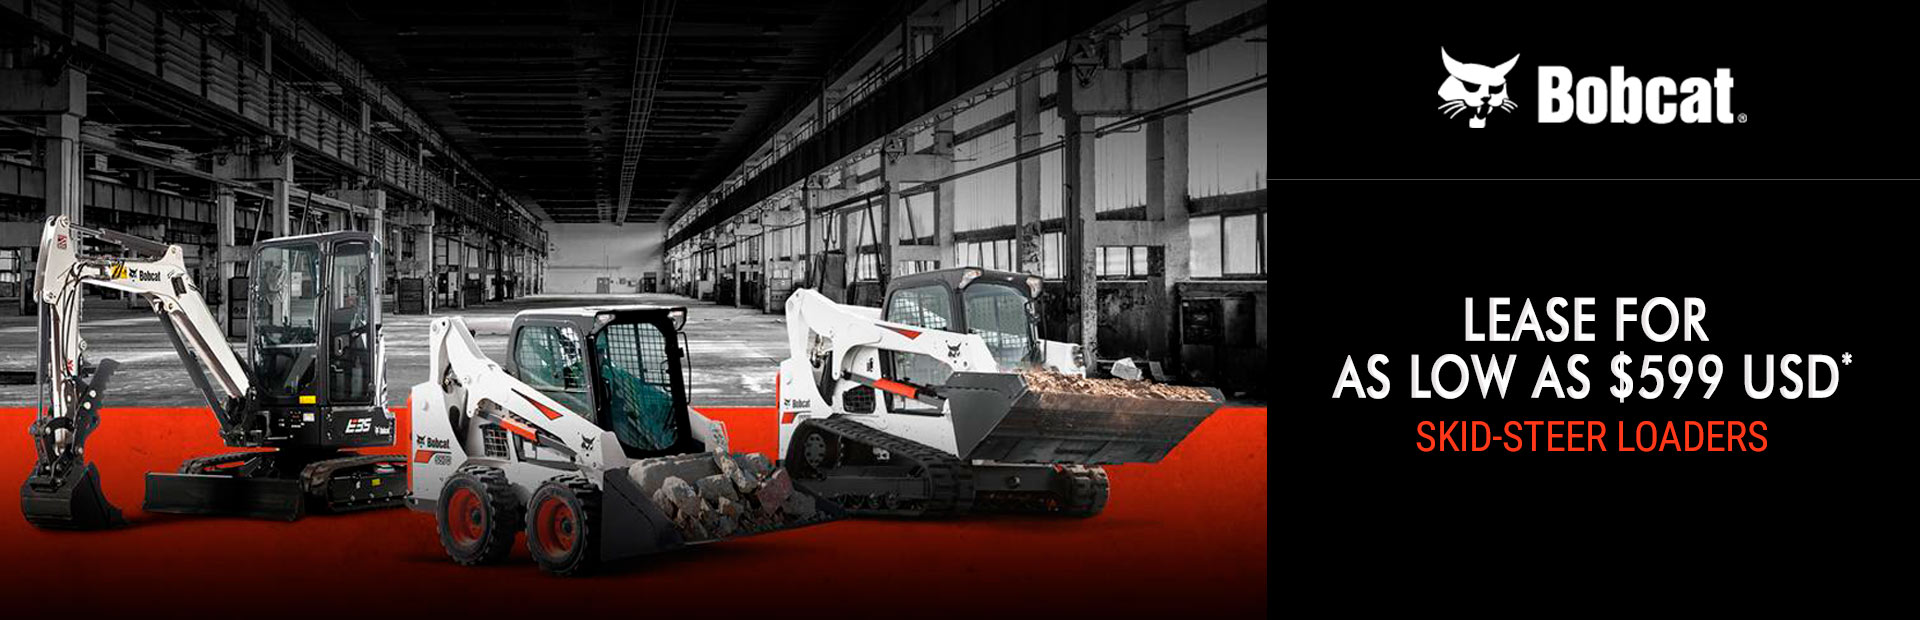 Bobcat: Lease Bobcat Skid-Steer Loaders For As Low As $599